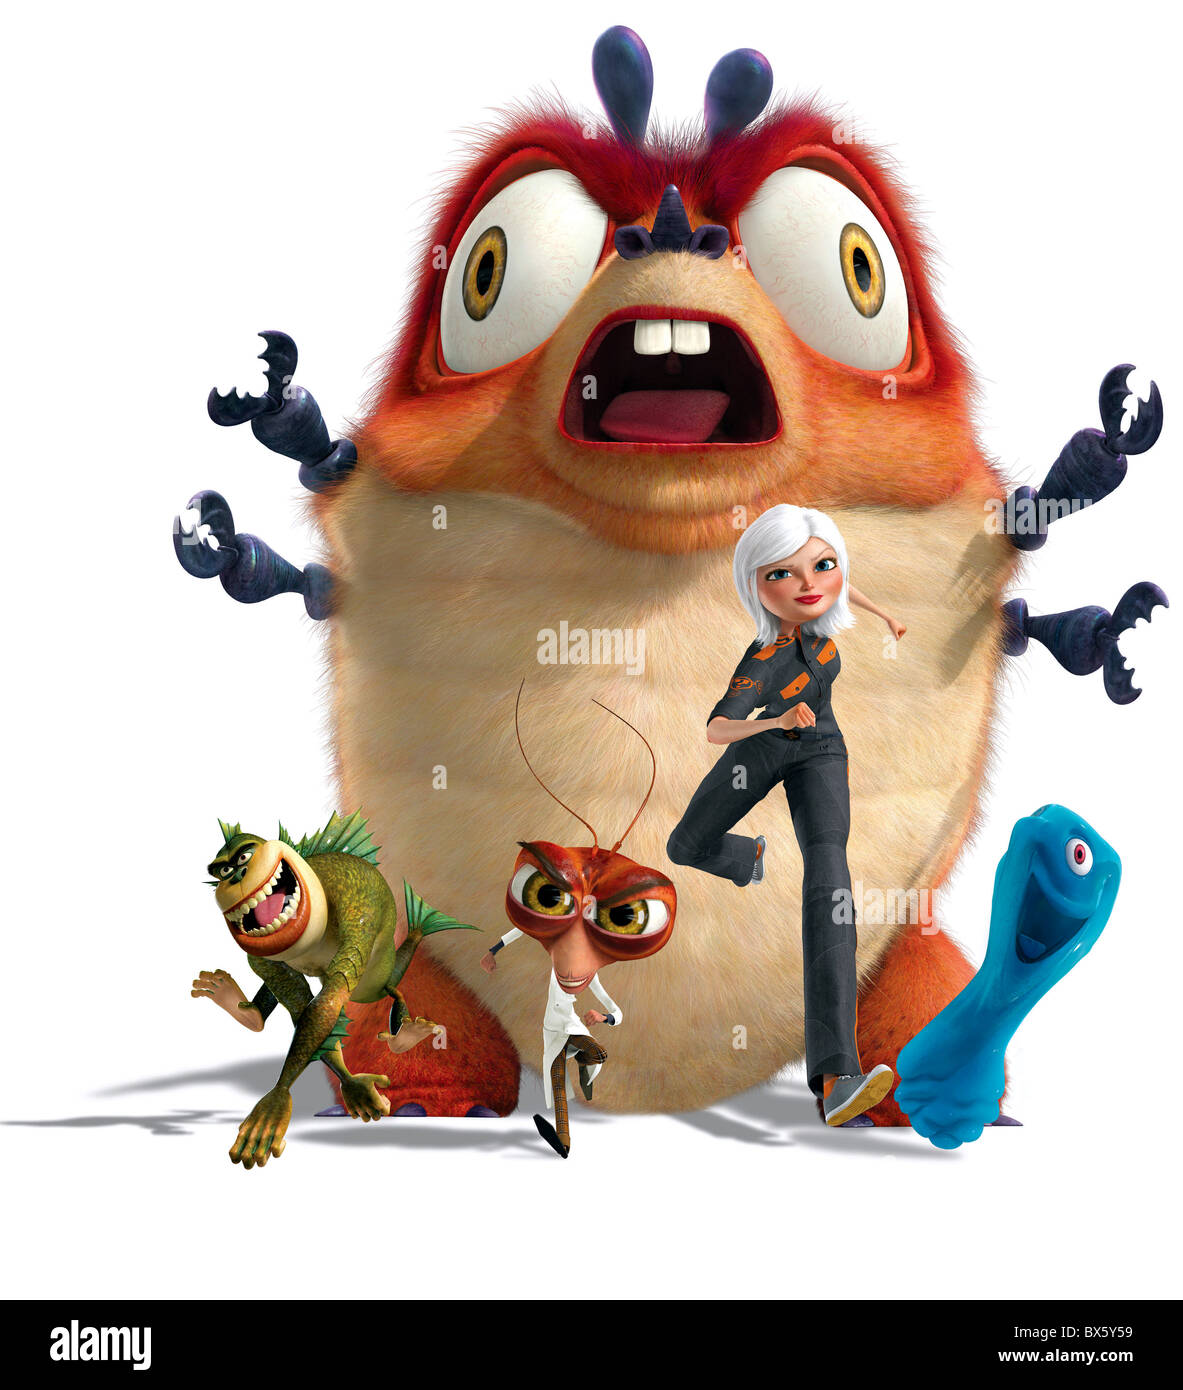 Monsters Vs Aliens The Missing Link